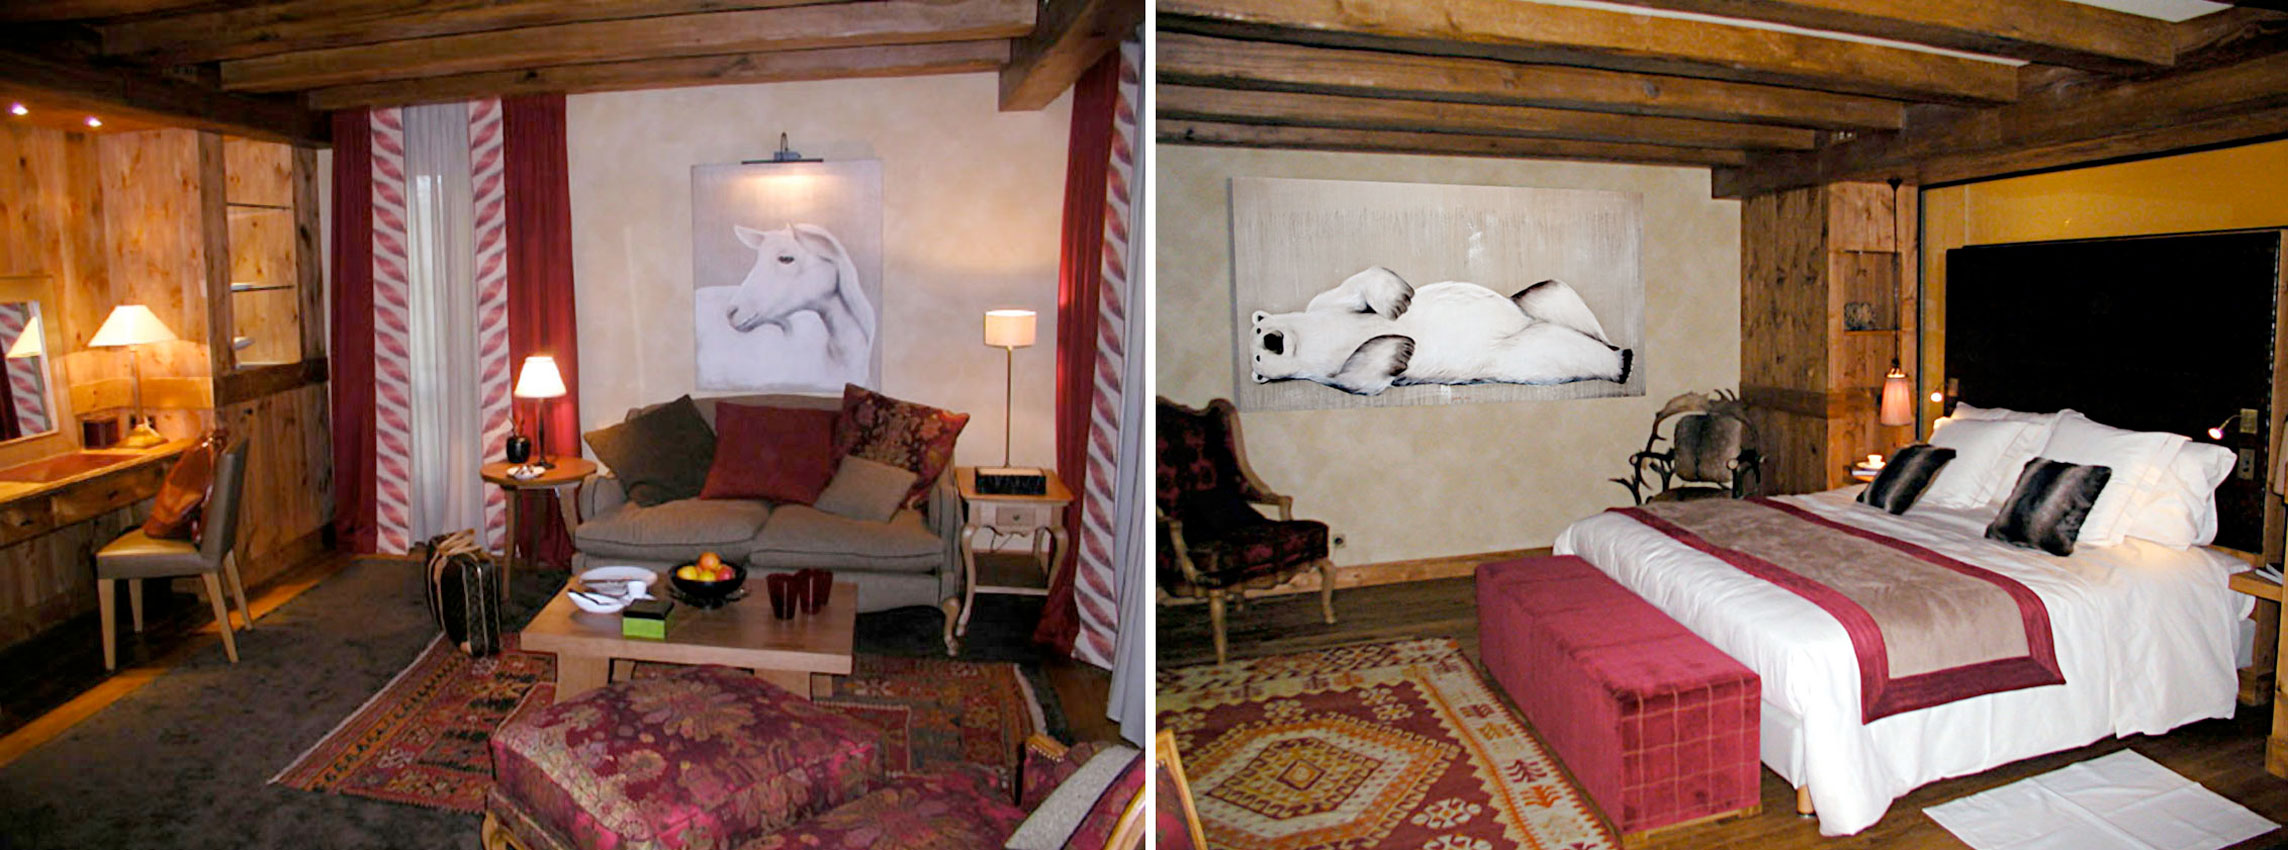 chambre cheval blanc HOTEL-CHEVAL-BLANC-COURCHEVEL-LUXURY-MOUNTAIN-RESIDENCE-FRENCH-ALPS-SKI Animal painting by Thierry Bisch pets wildlife artist painter canvas art decoration